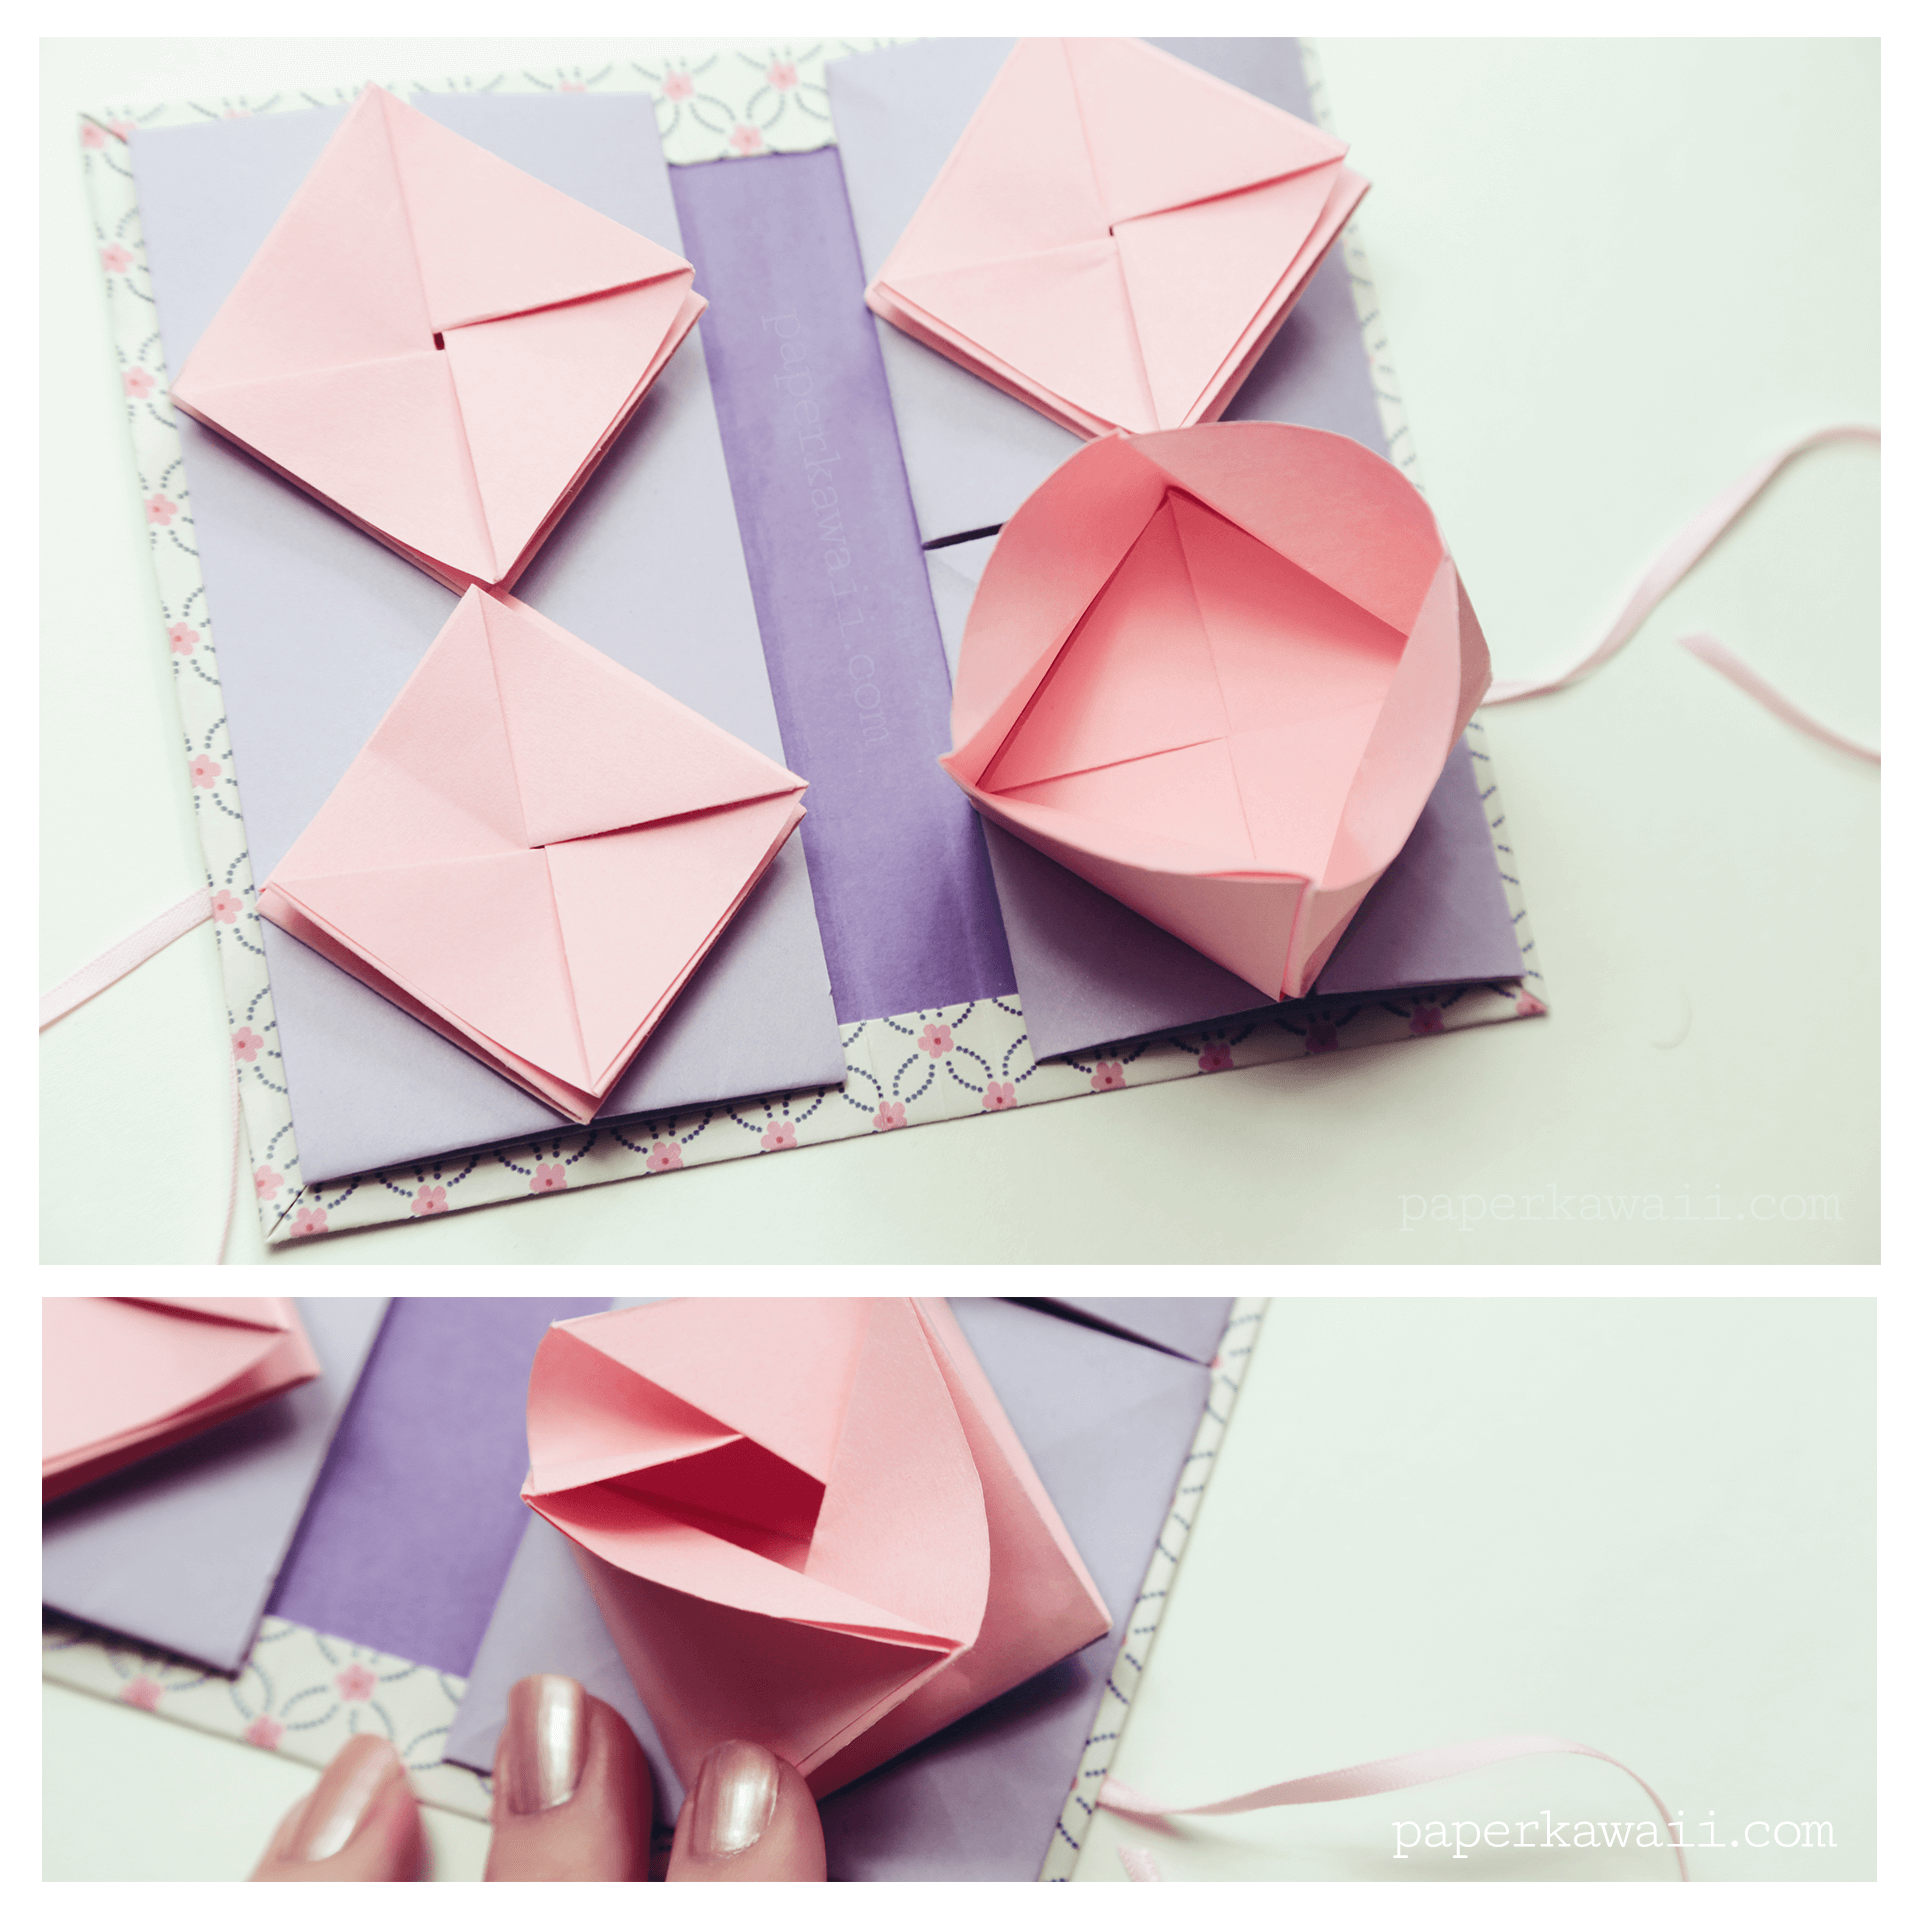 Paper Book Cover Tutorial : Origami chinese thread book video tutorial paper kawaii